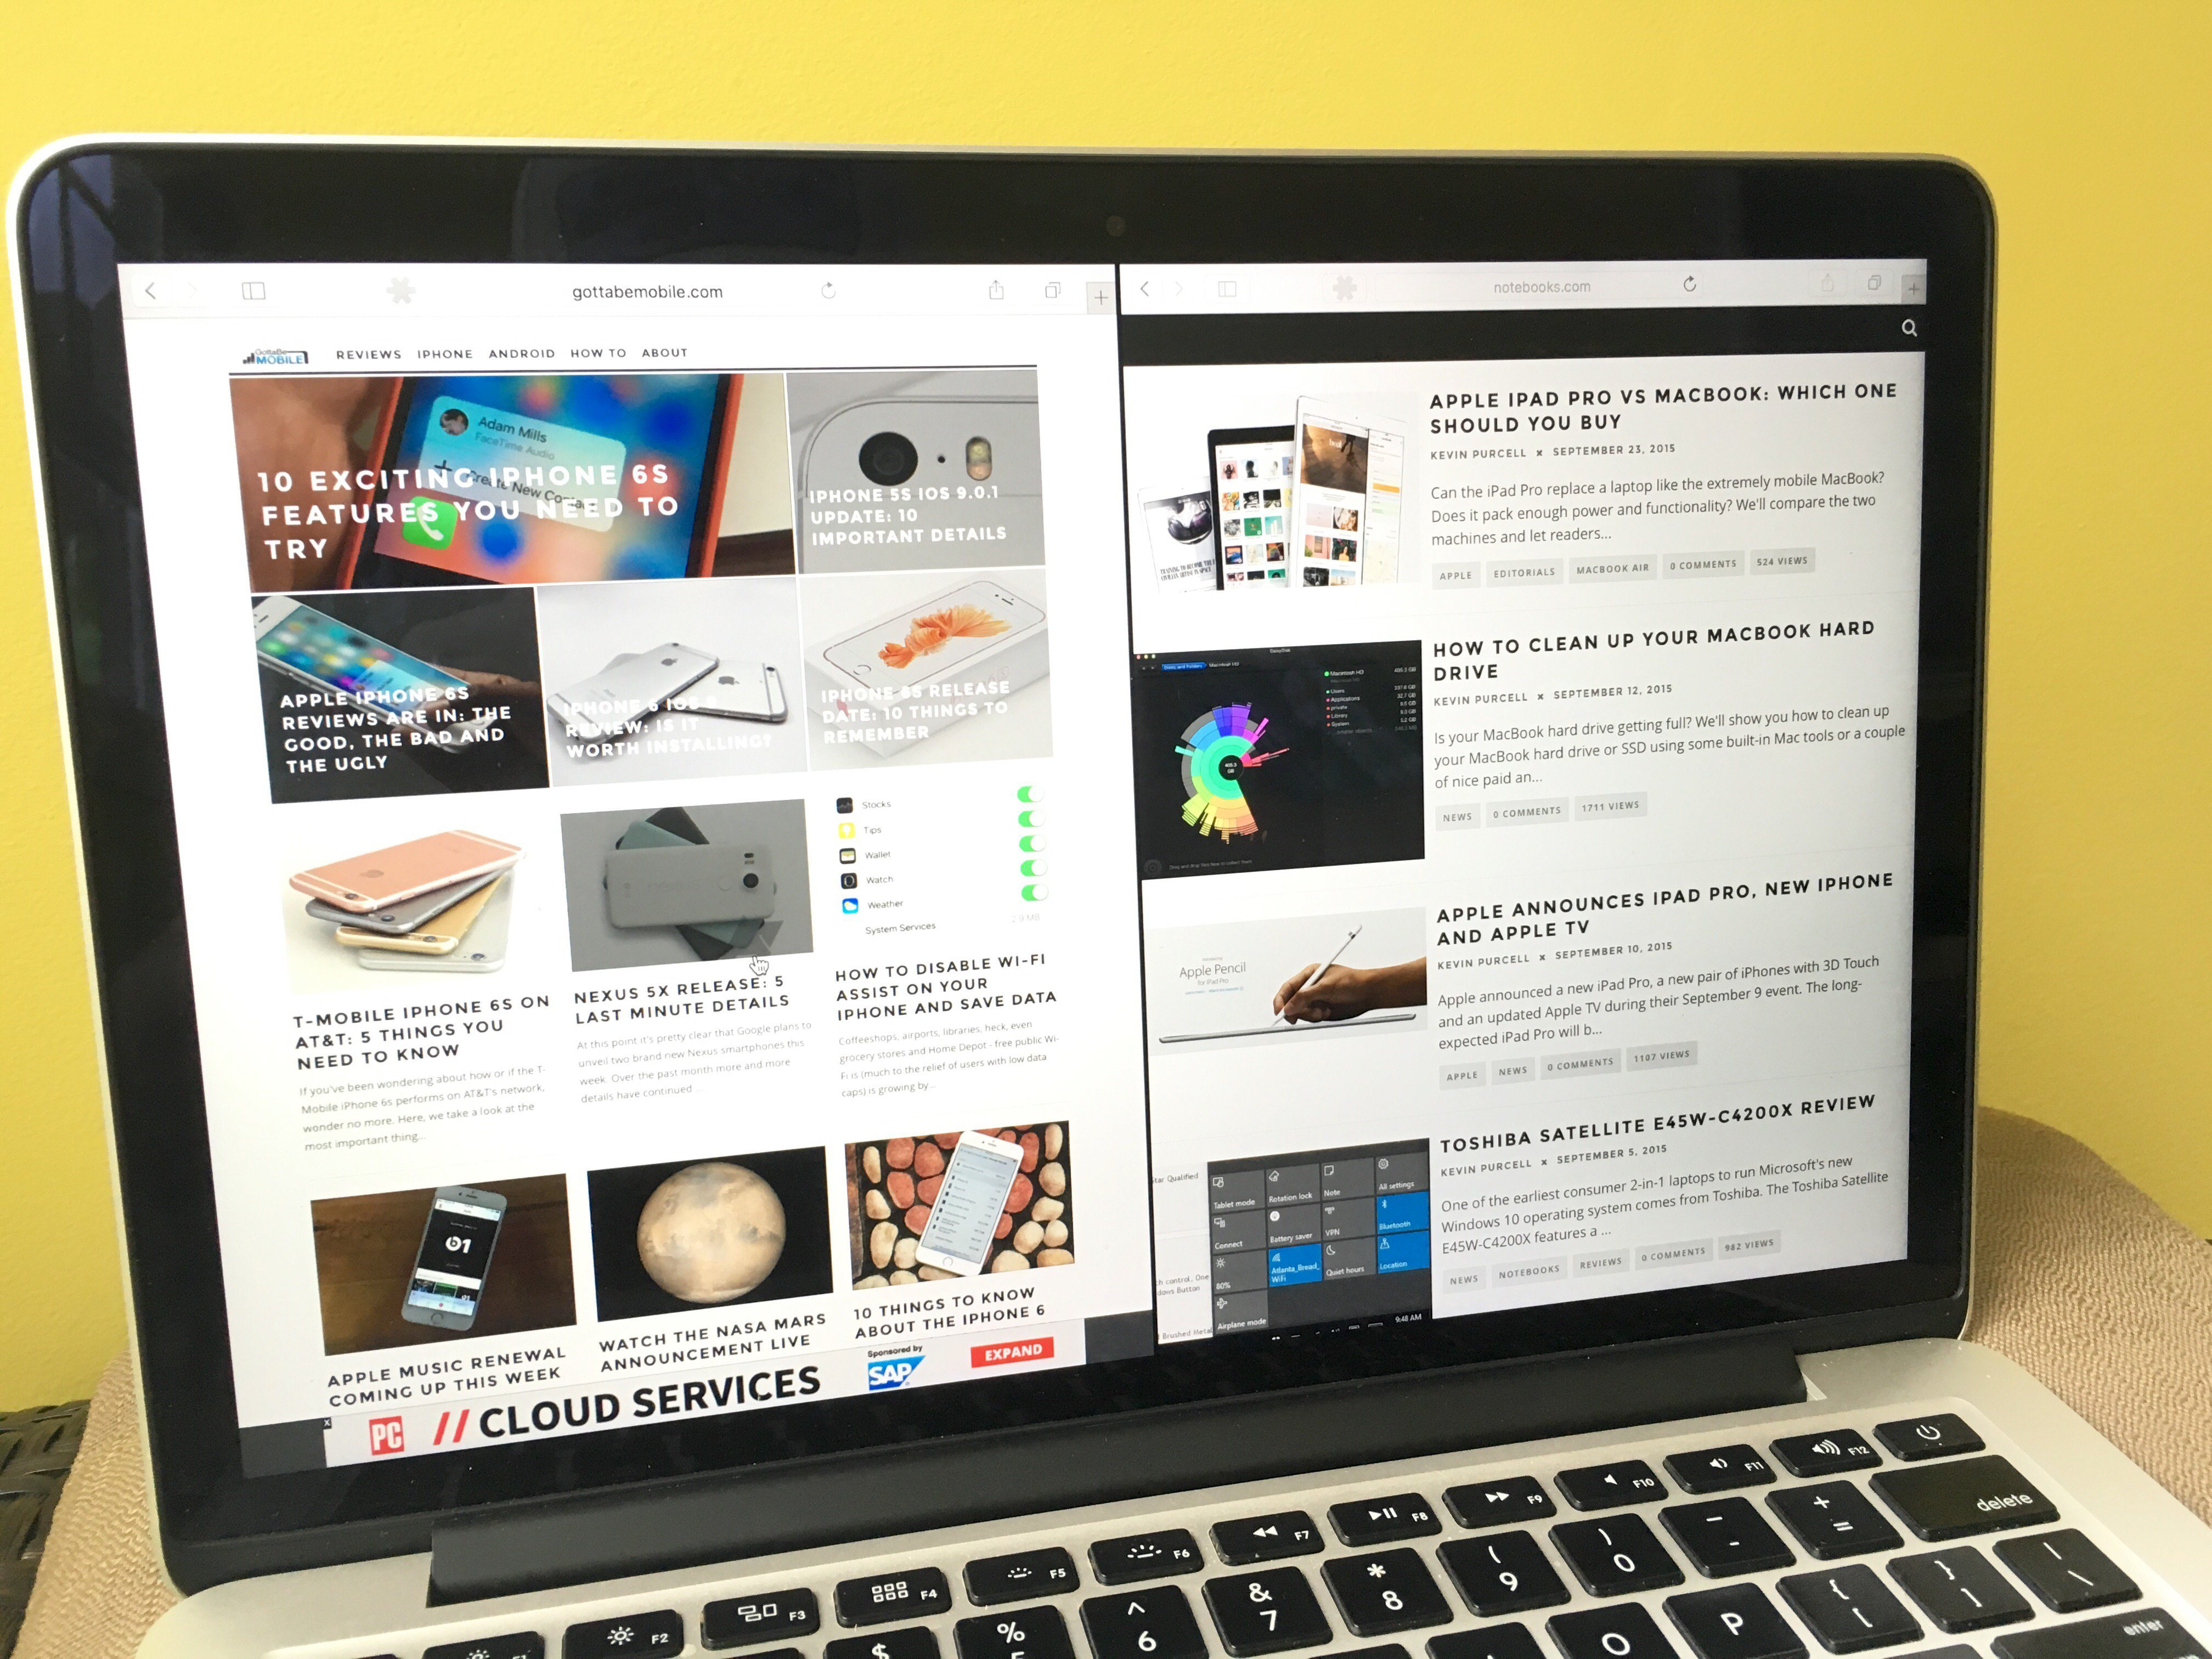 What you need to know about the OS X El Capitan update and what's next.